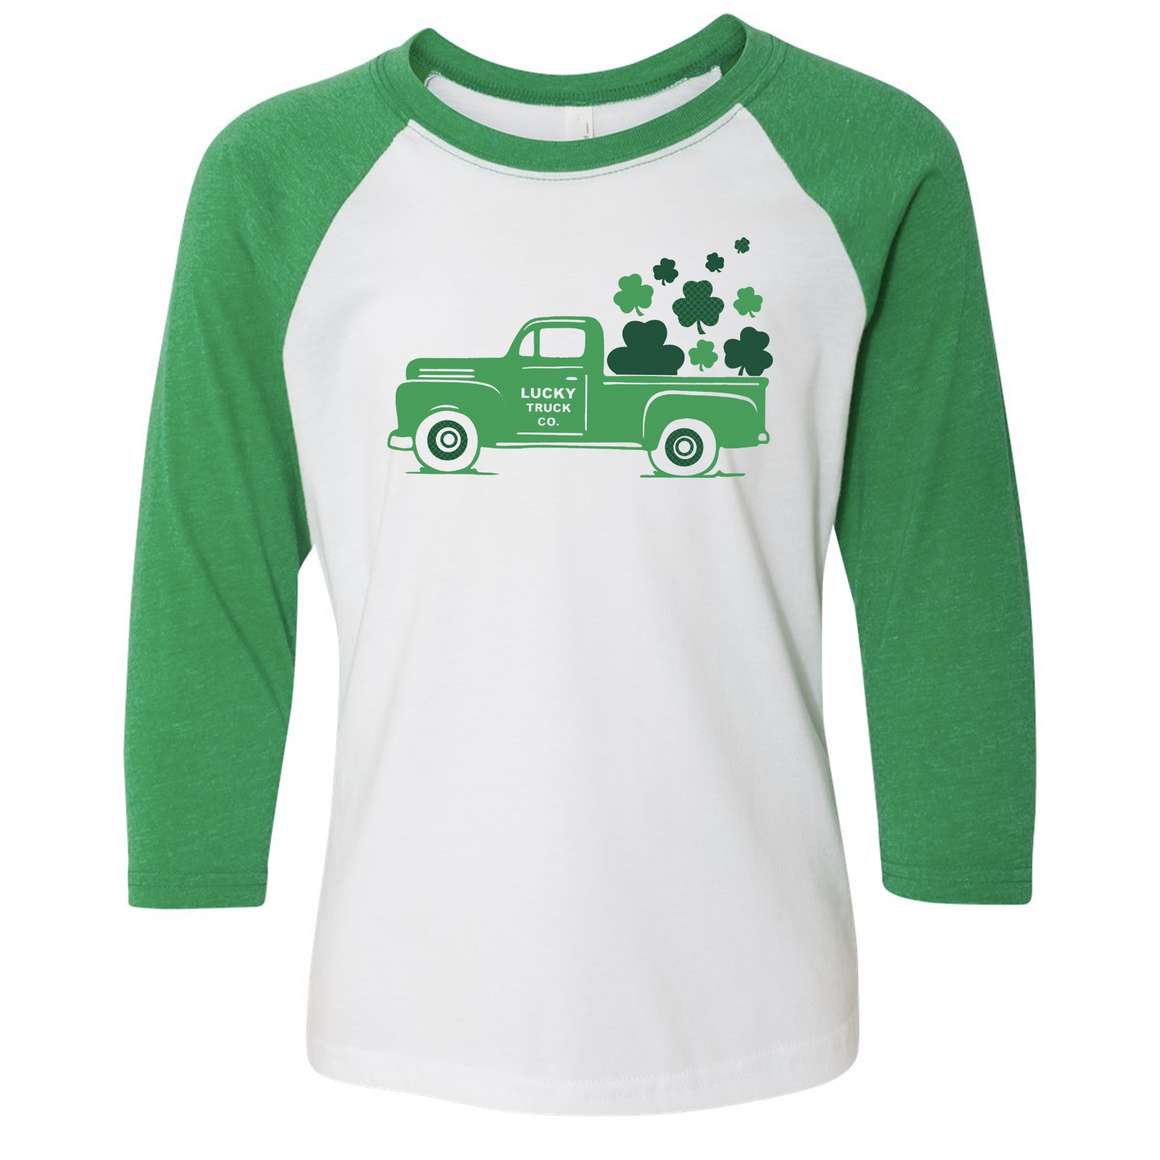 Loads of Luck Truck 3/4 Sleeve Baseball Tee (Toddler and Youth)